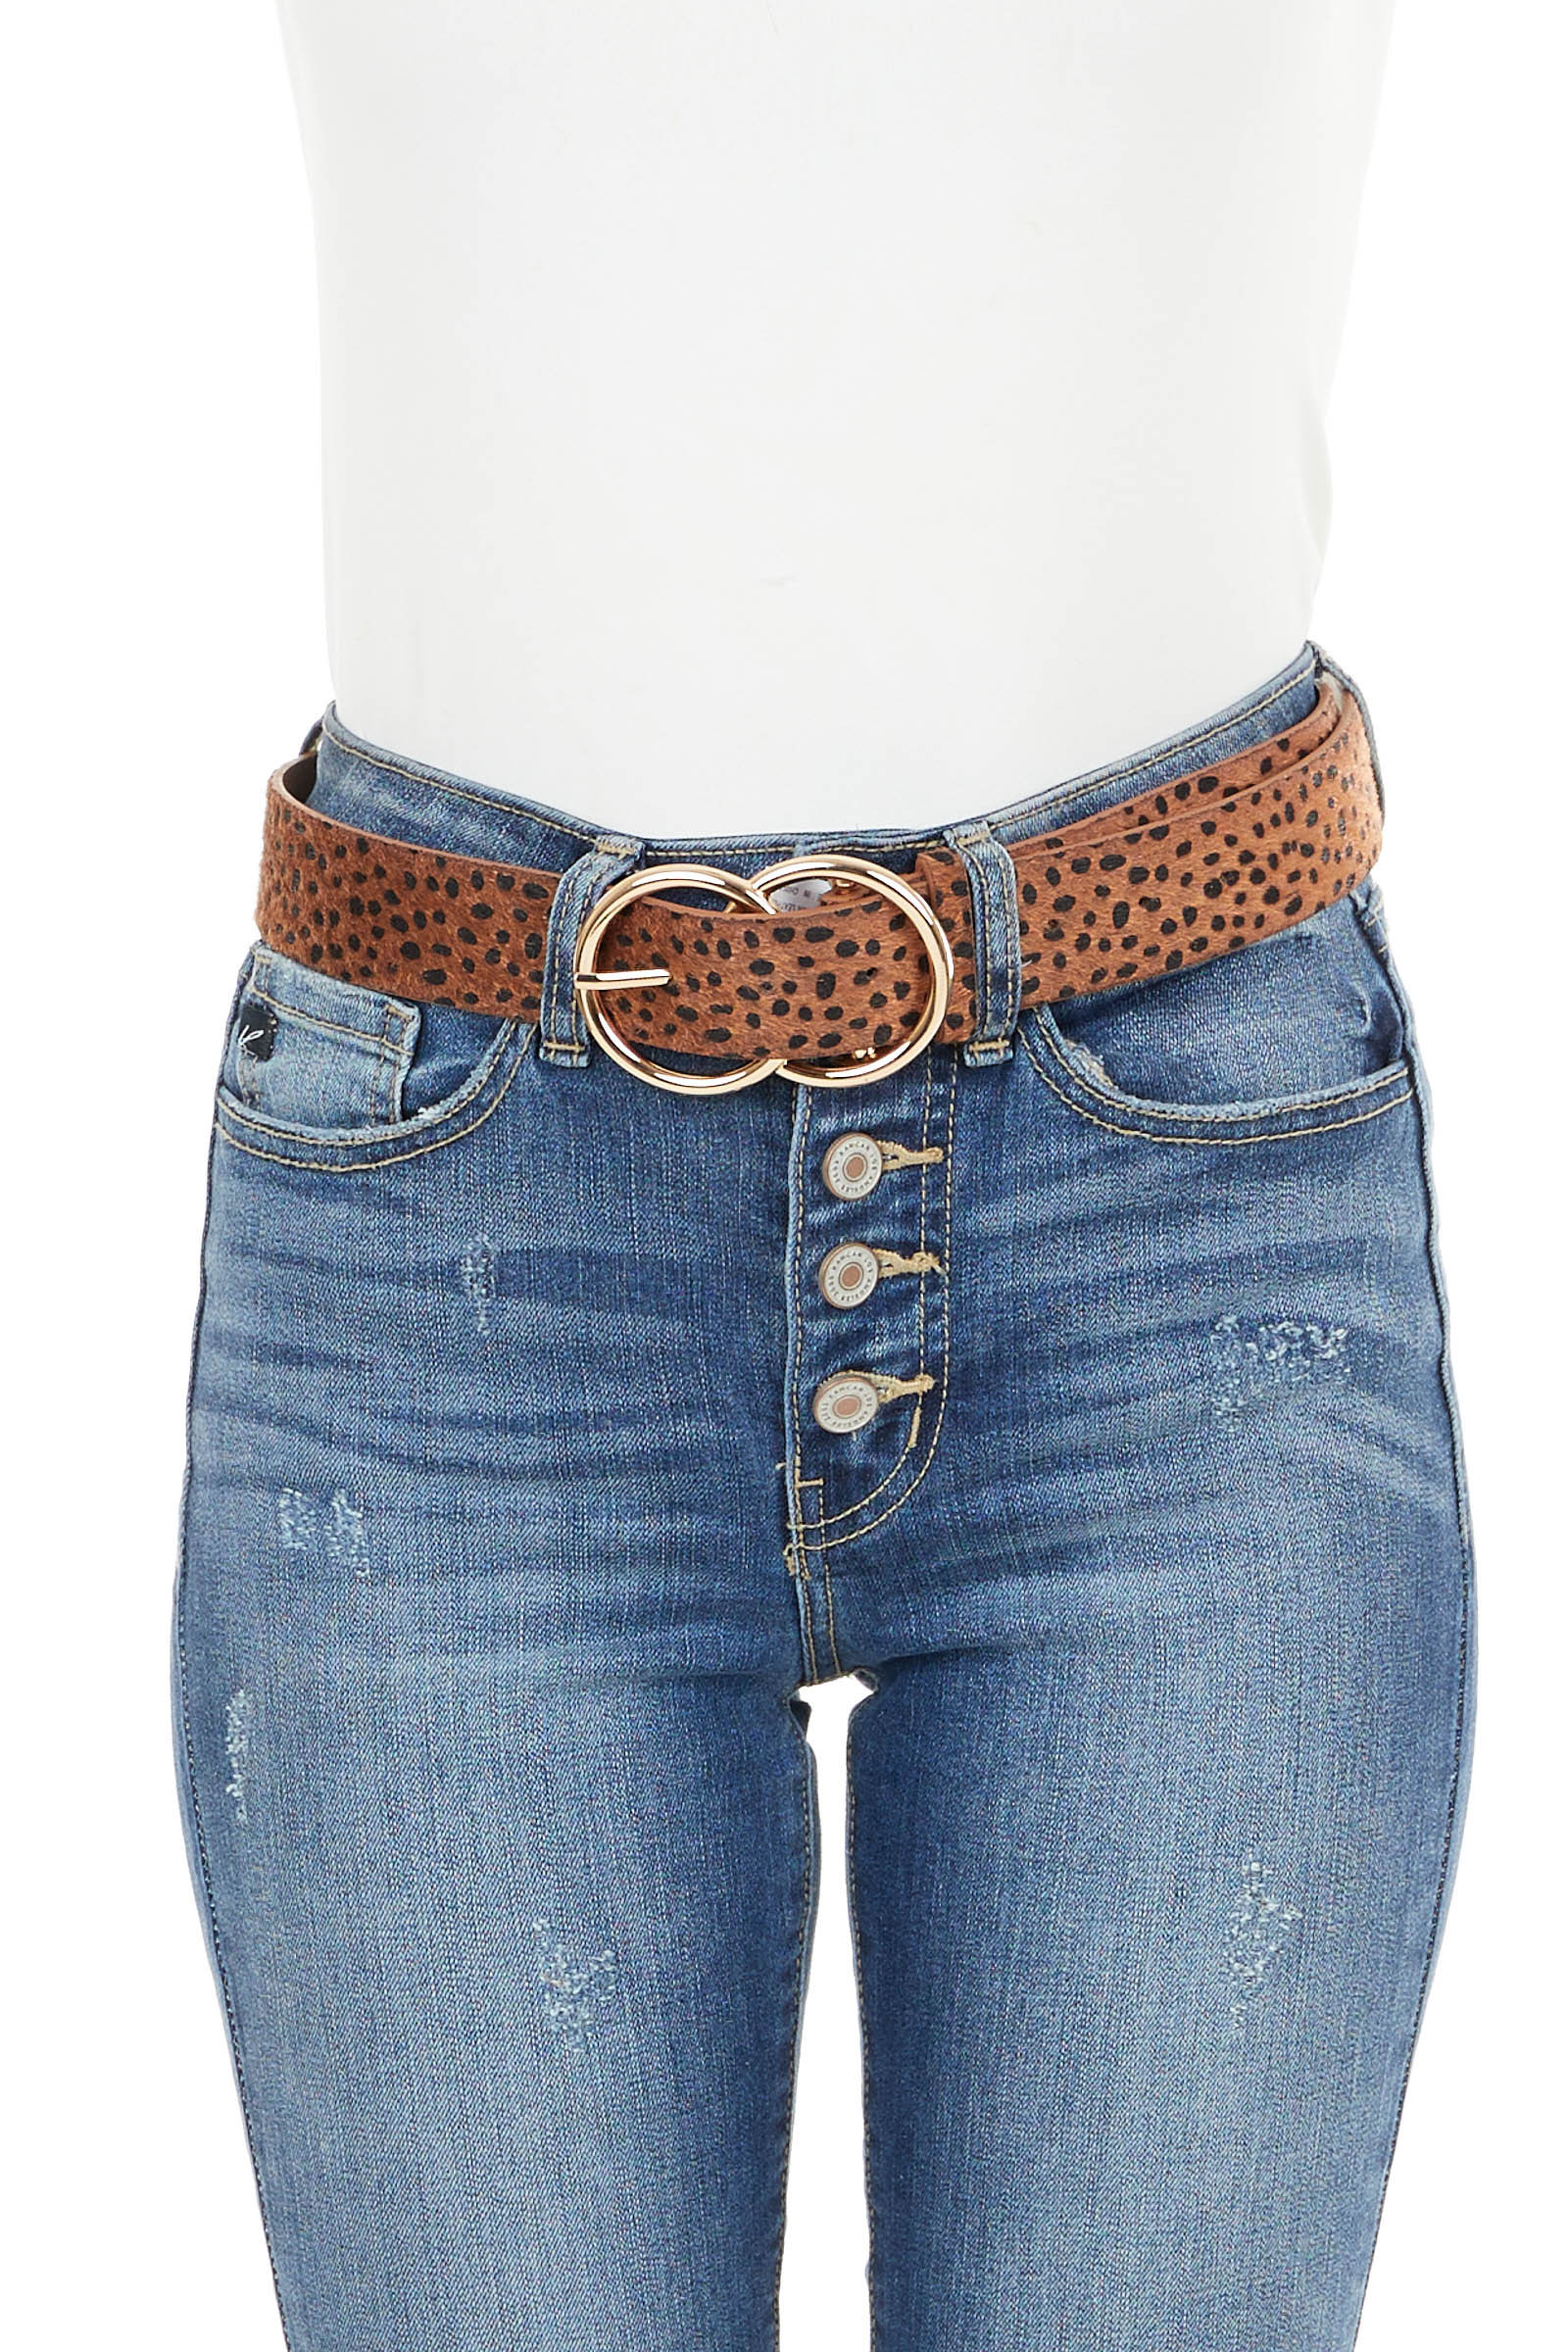 Cognac Furry Cheetah Print Leather Belt with Gold Buckle